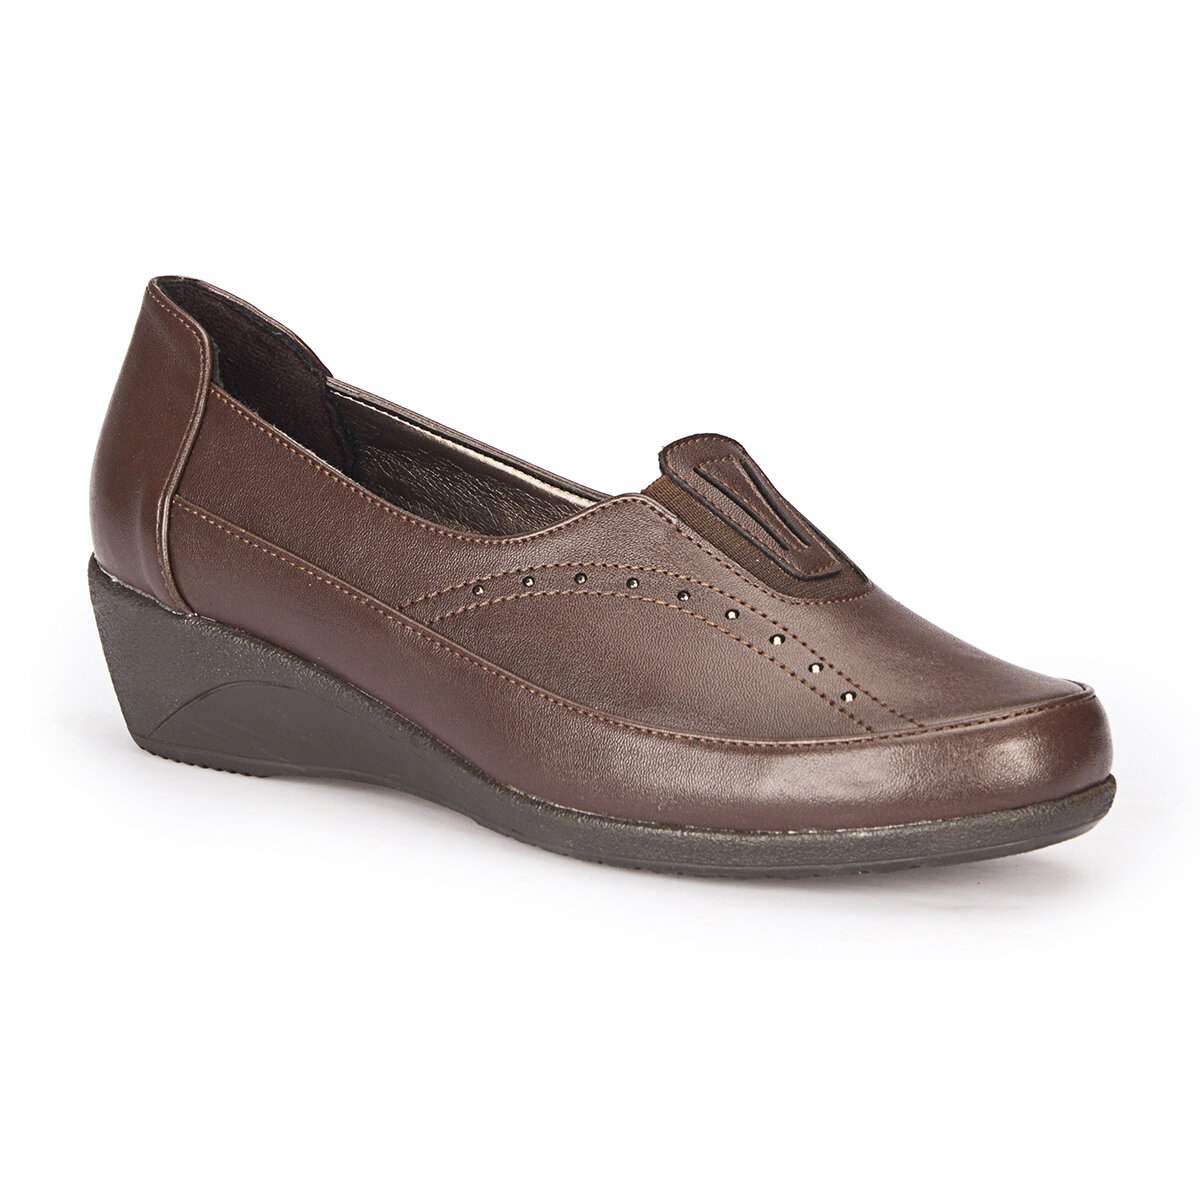 FLO 72.158020.Z Brown Women 'S Comfort Shoes Polaris